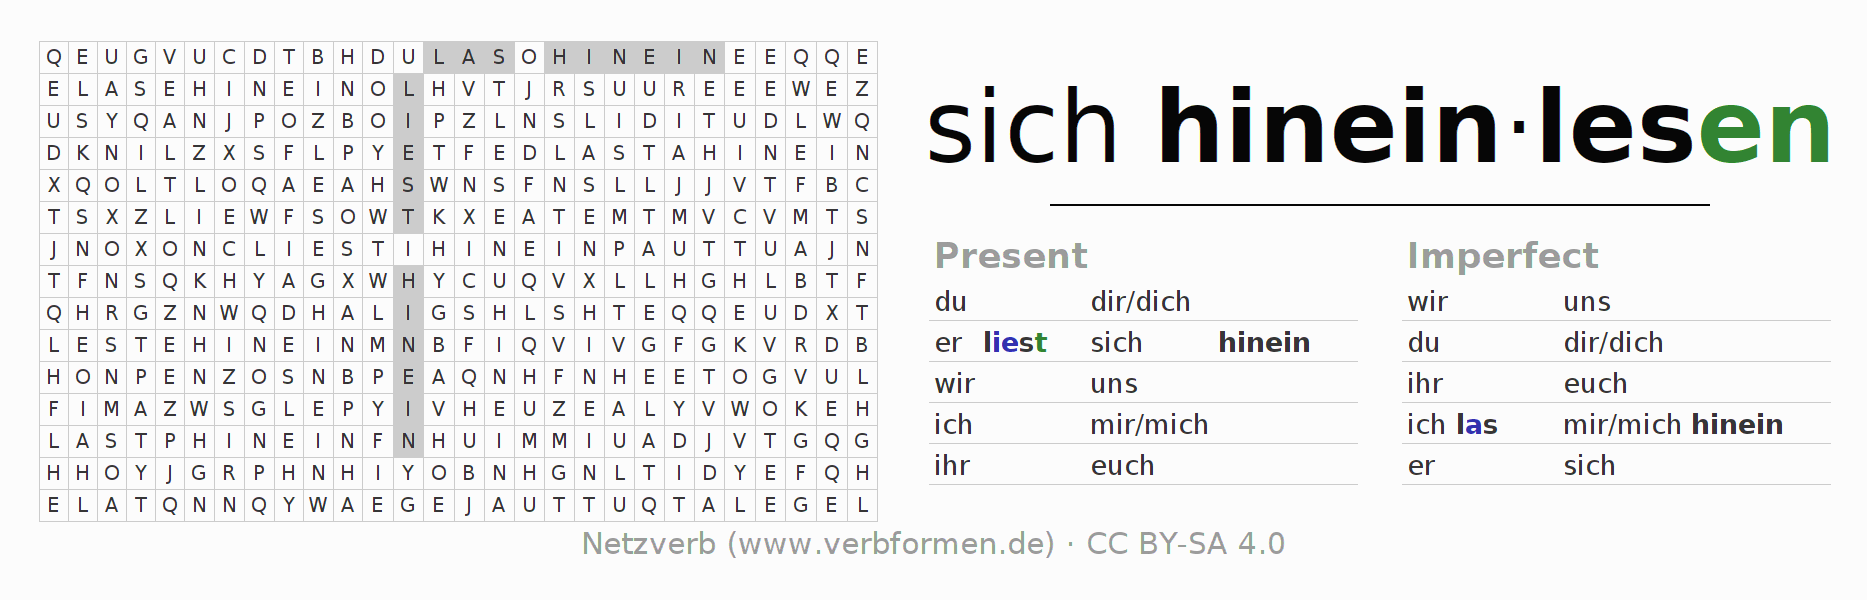 Word search puzzle for the conjugation of the verb sich hineinlesen